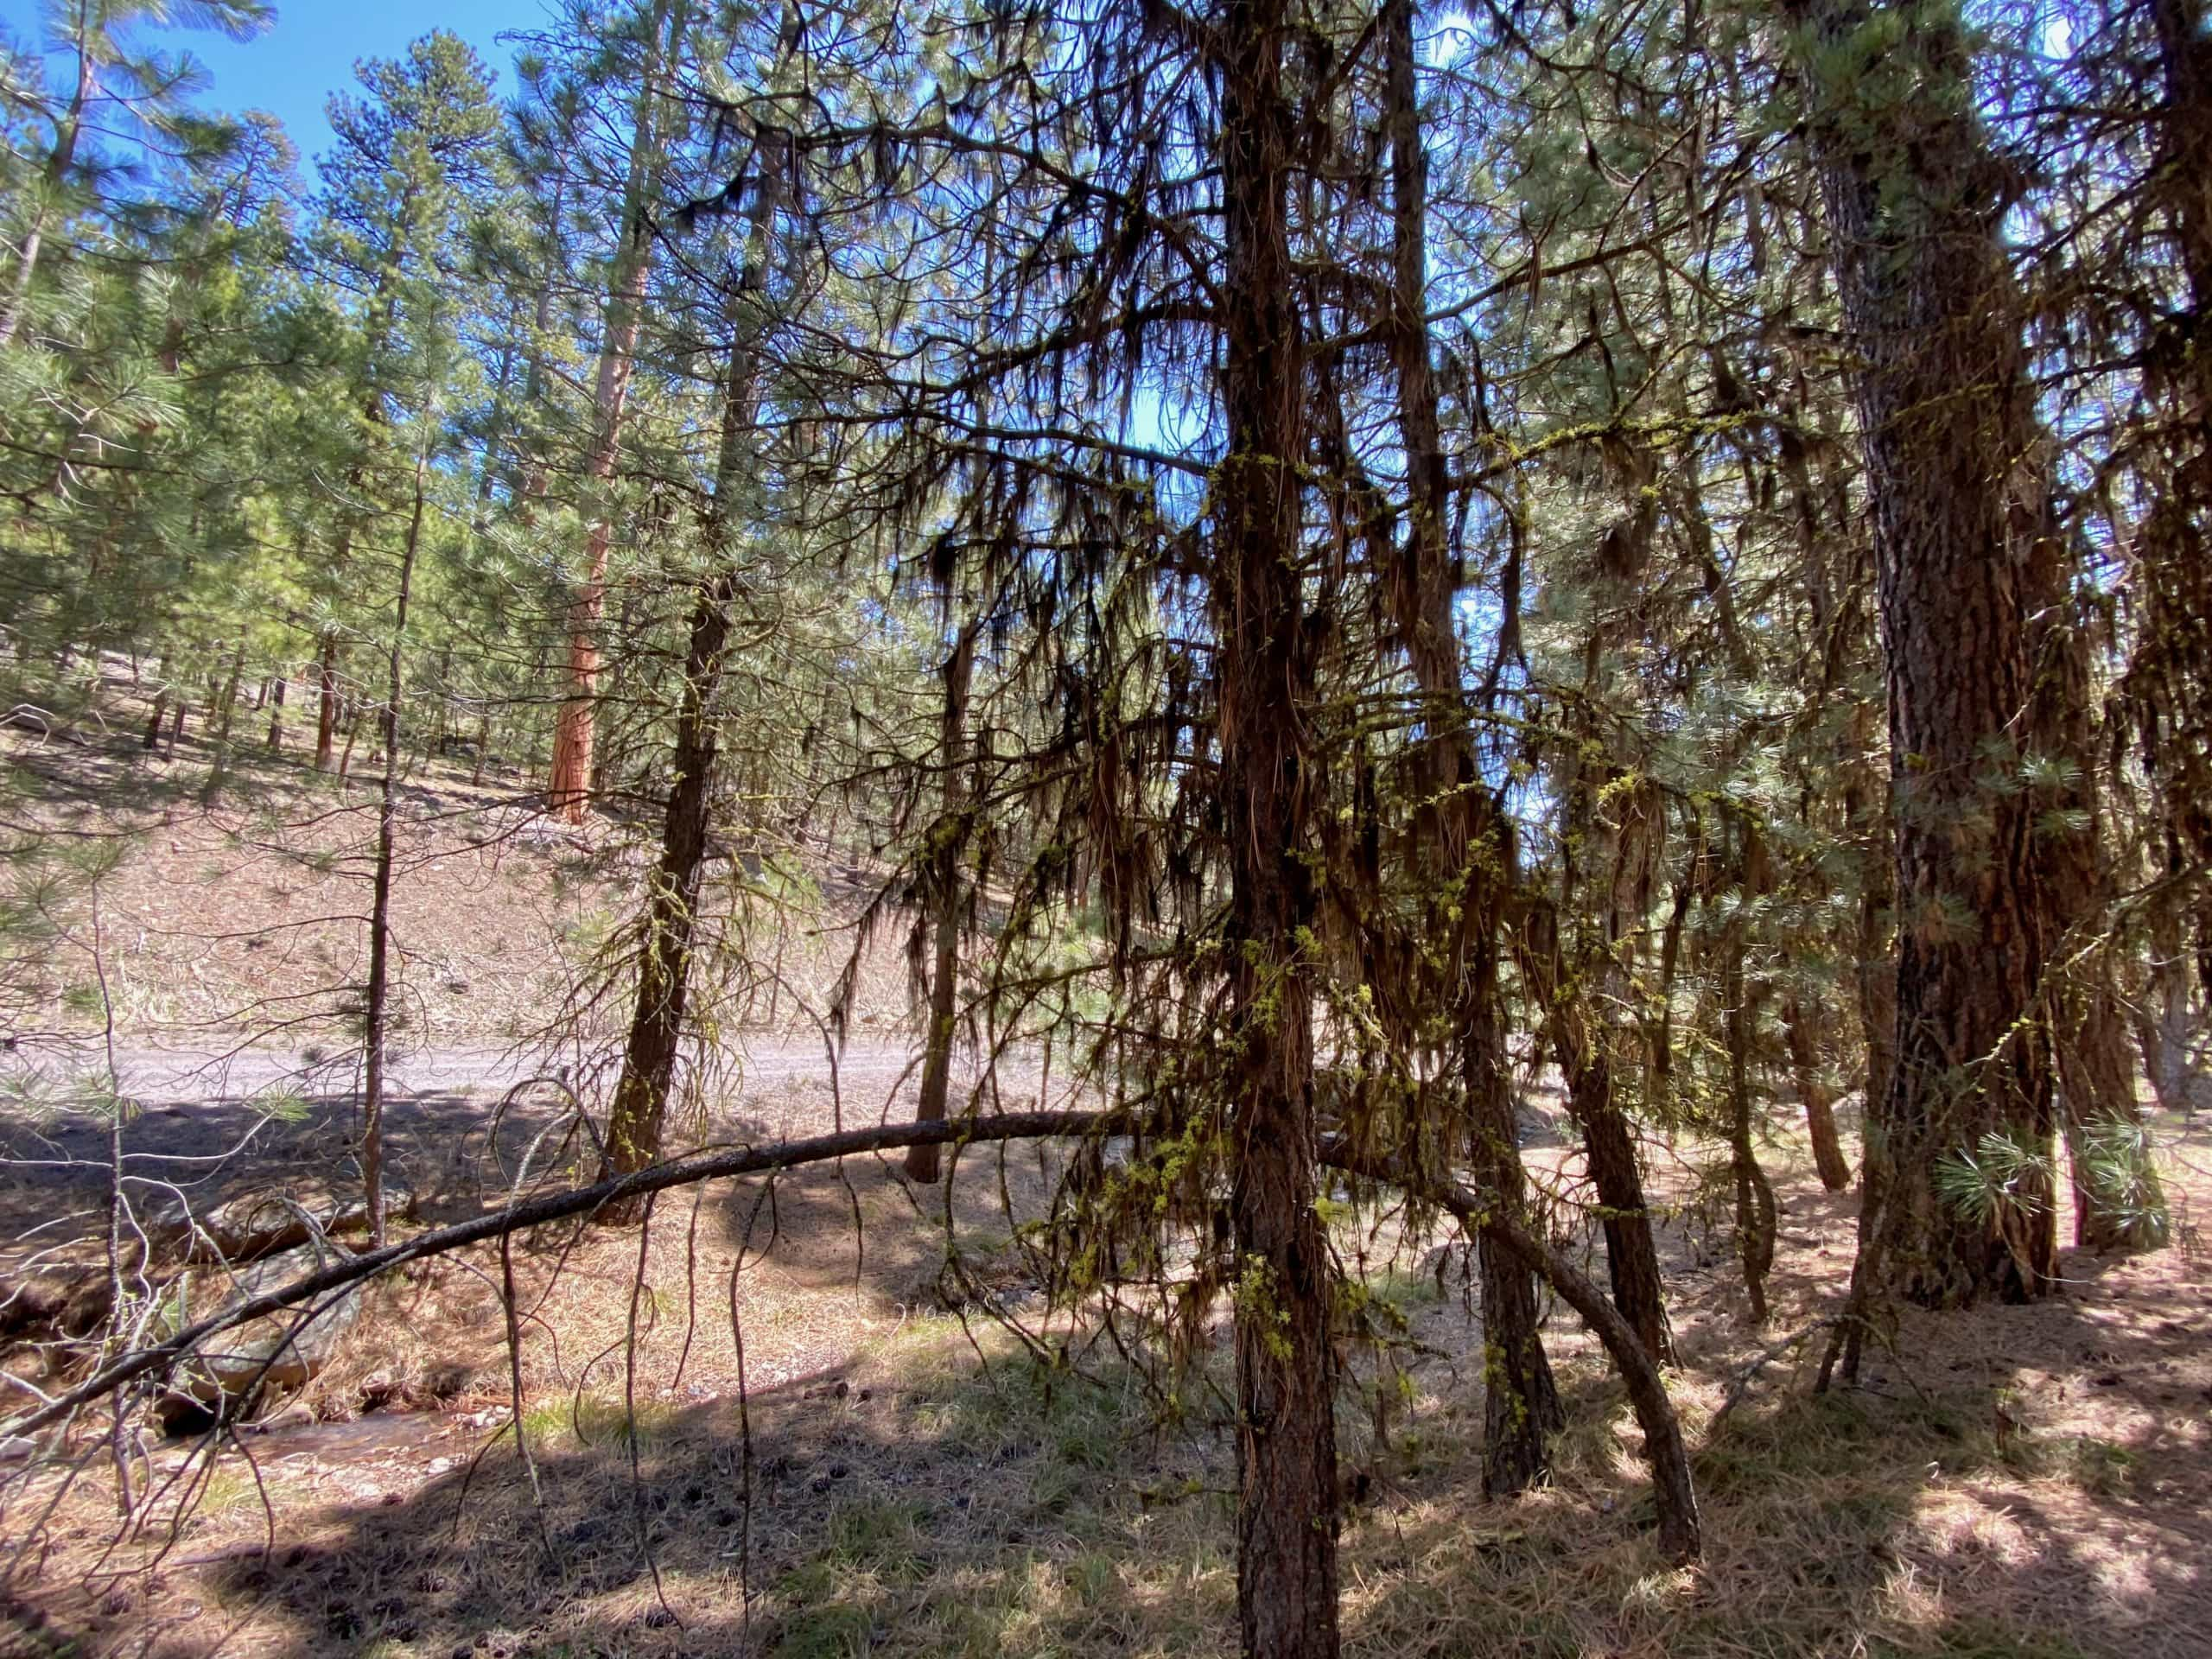 Trees with Wolf moss and Black (Wila) moss in the Ochoco National Forest near Riley, OR.